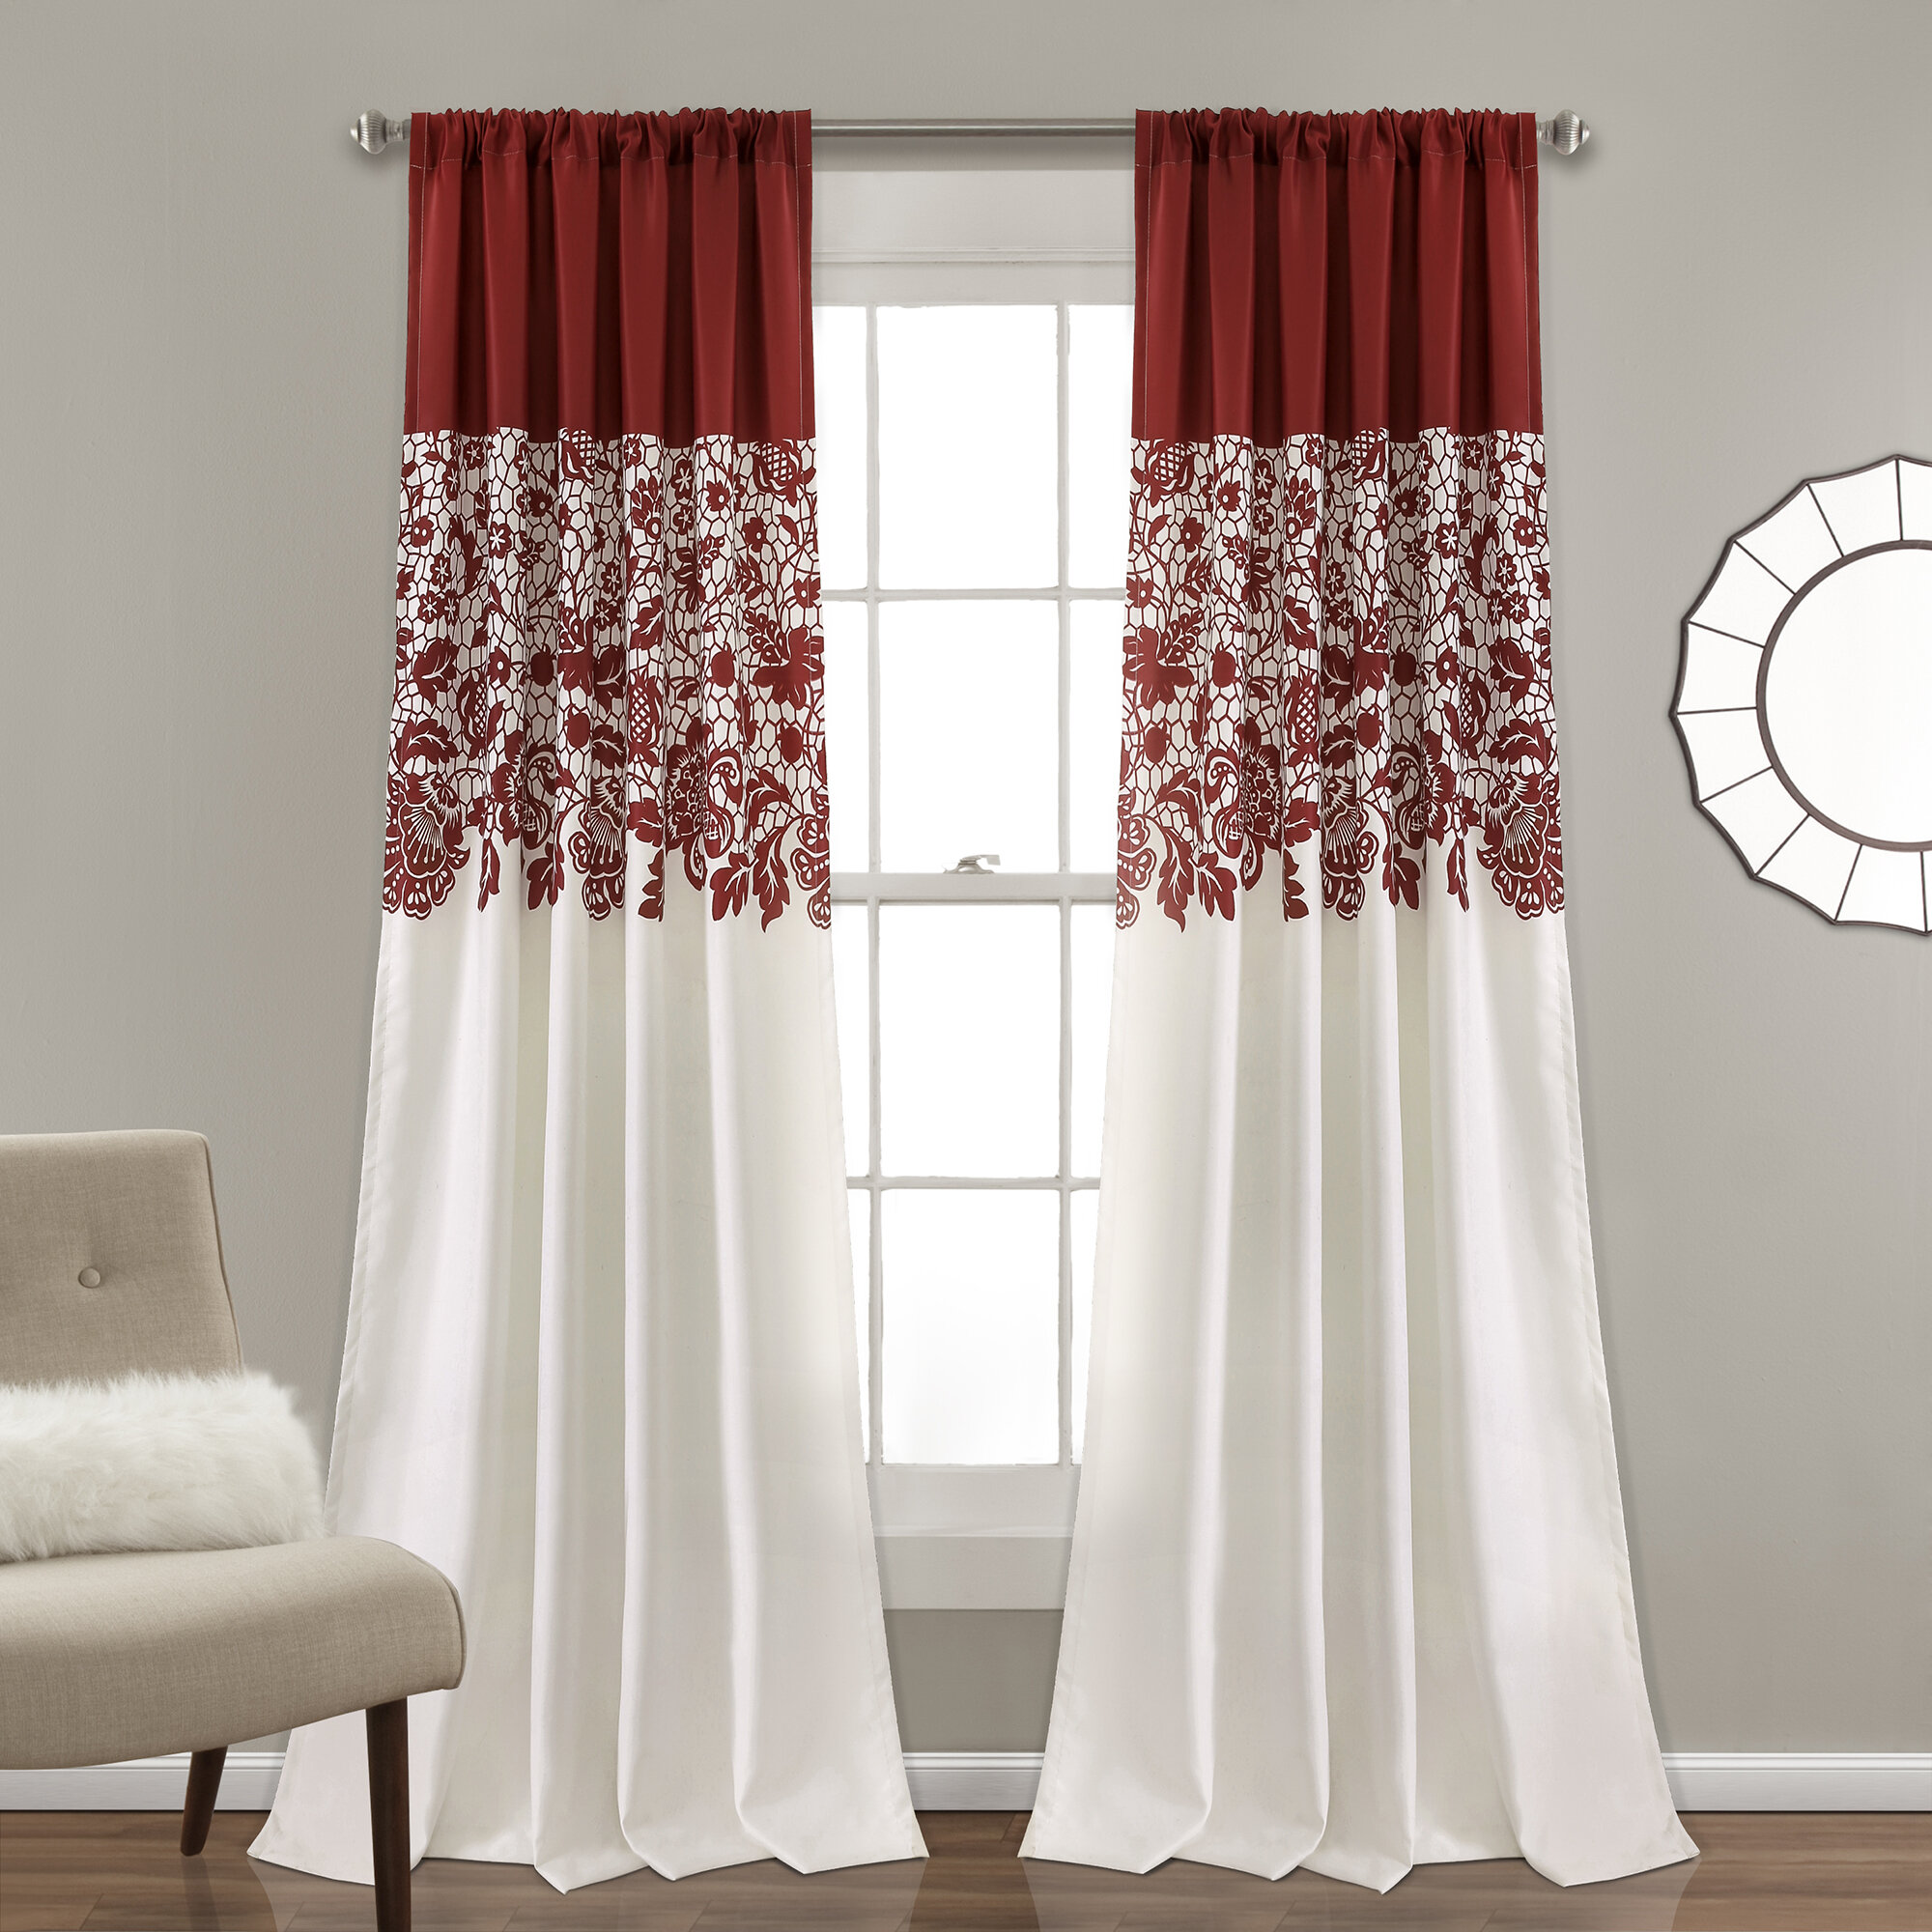 image hydrangea at size ideas and full floral clearance curtains eyelet walmart shower panels eyelets ands red drapes blue ebay excellent print of thermal curtain dreaded rockport discount pink